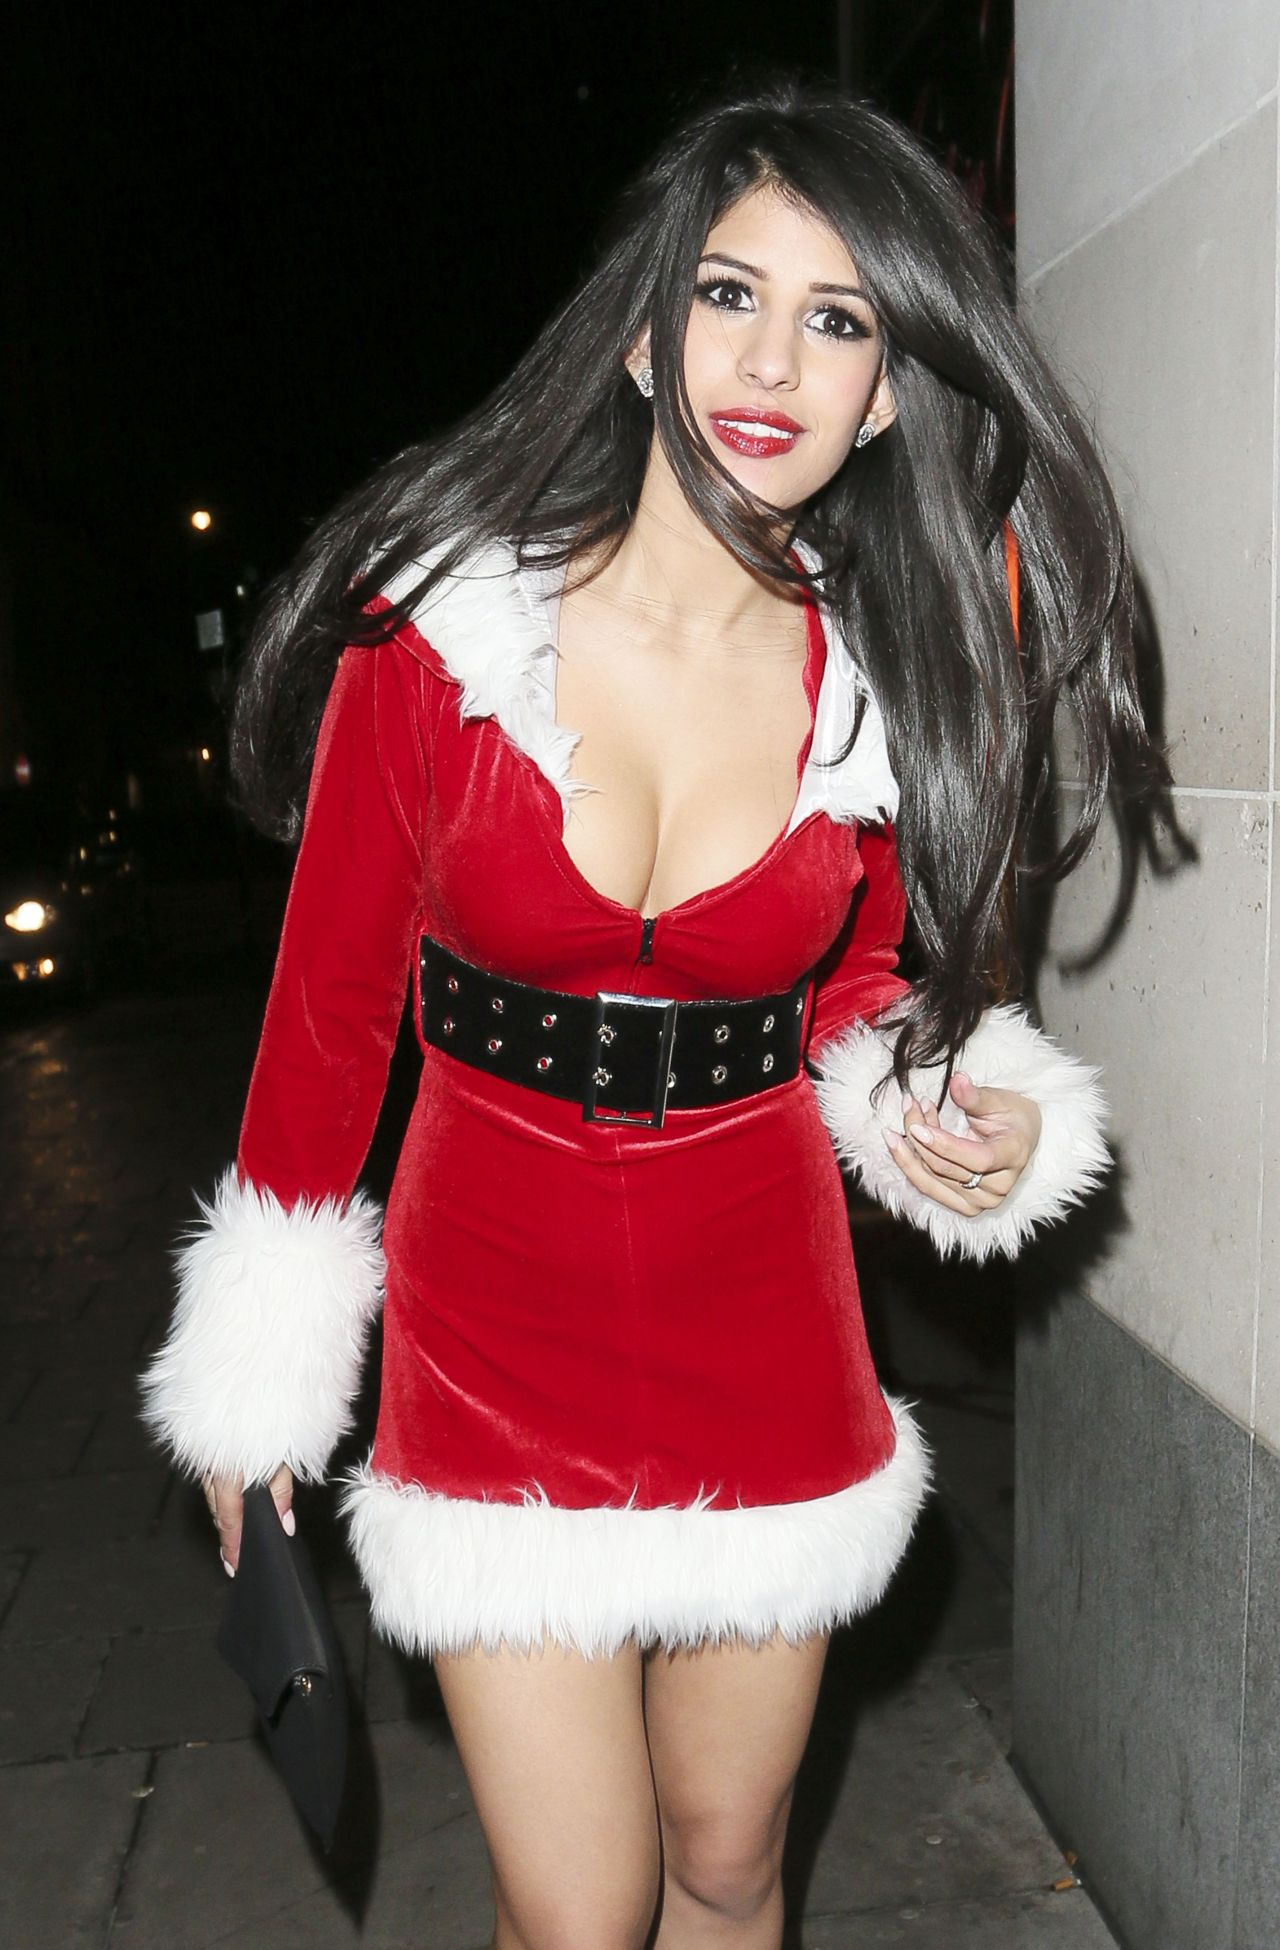 Jasmin Walia - Mayfair Photos - December 2013